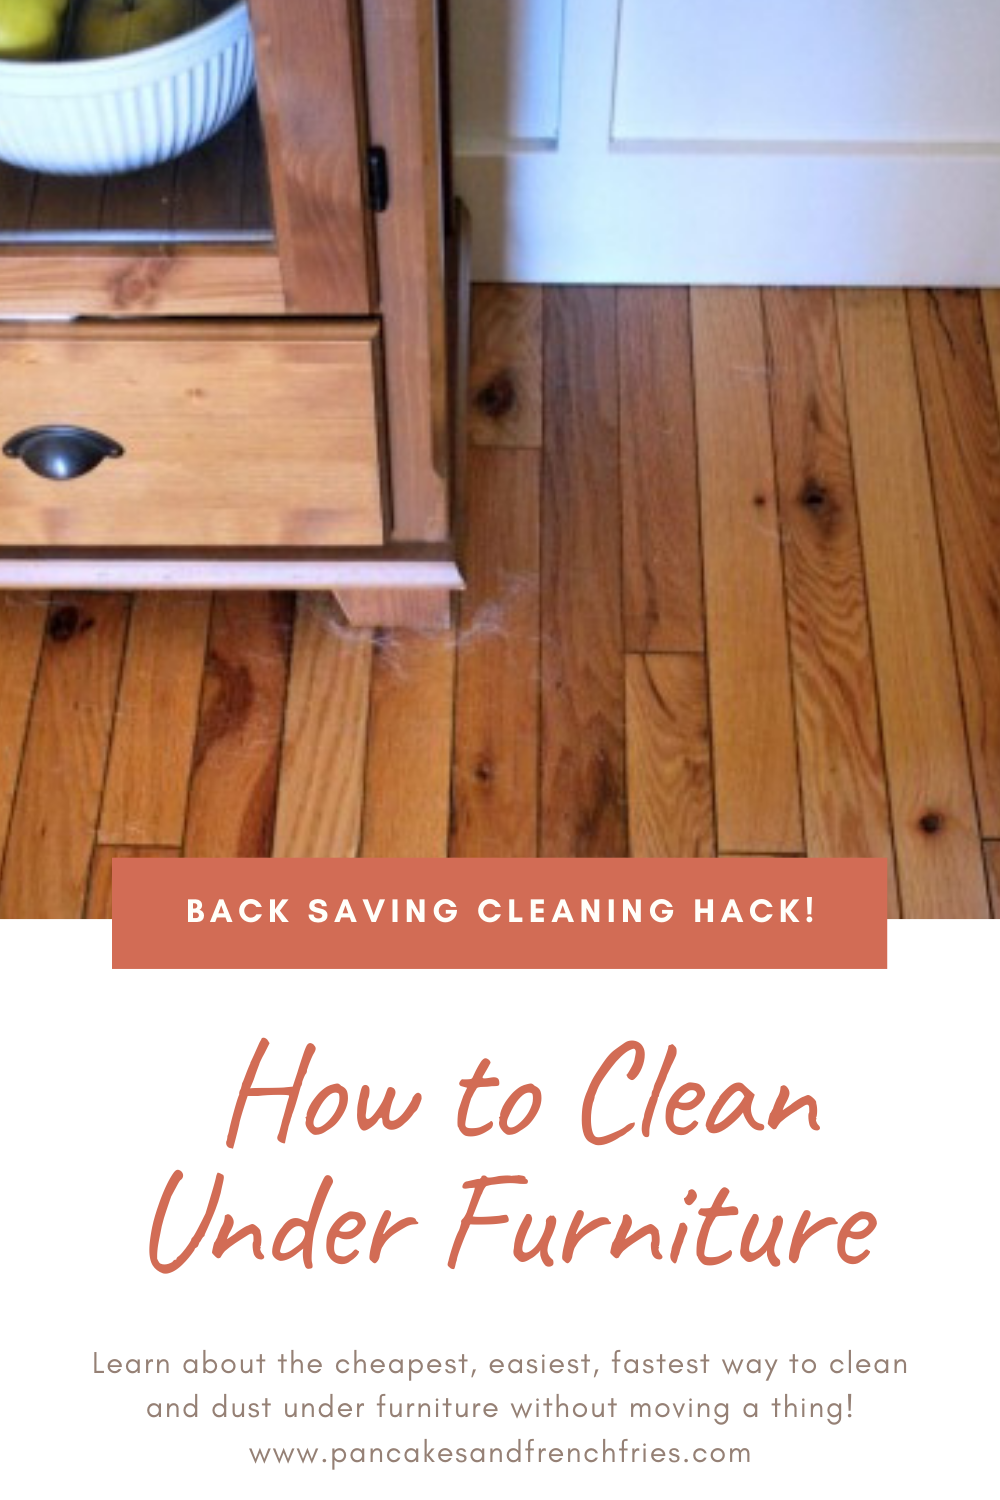 How To Clean Under Furniture In 2020 Furniture Cleaning Hacks Cleaning